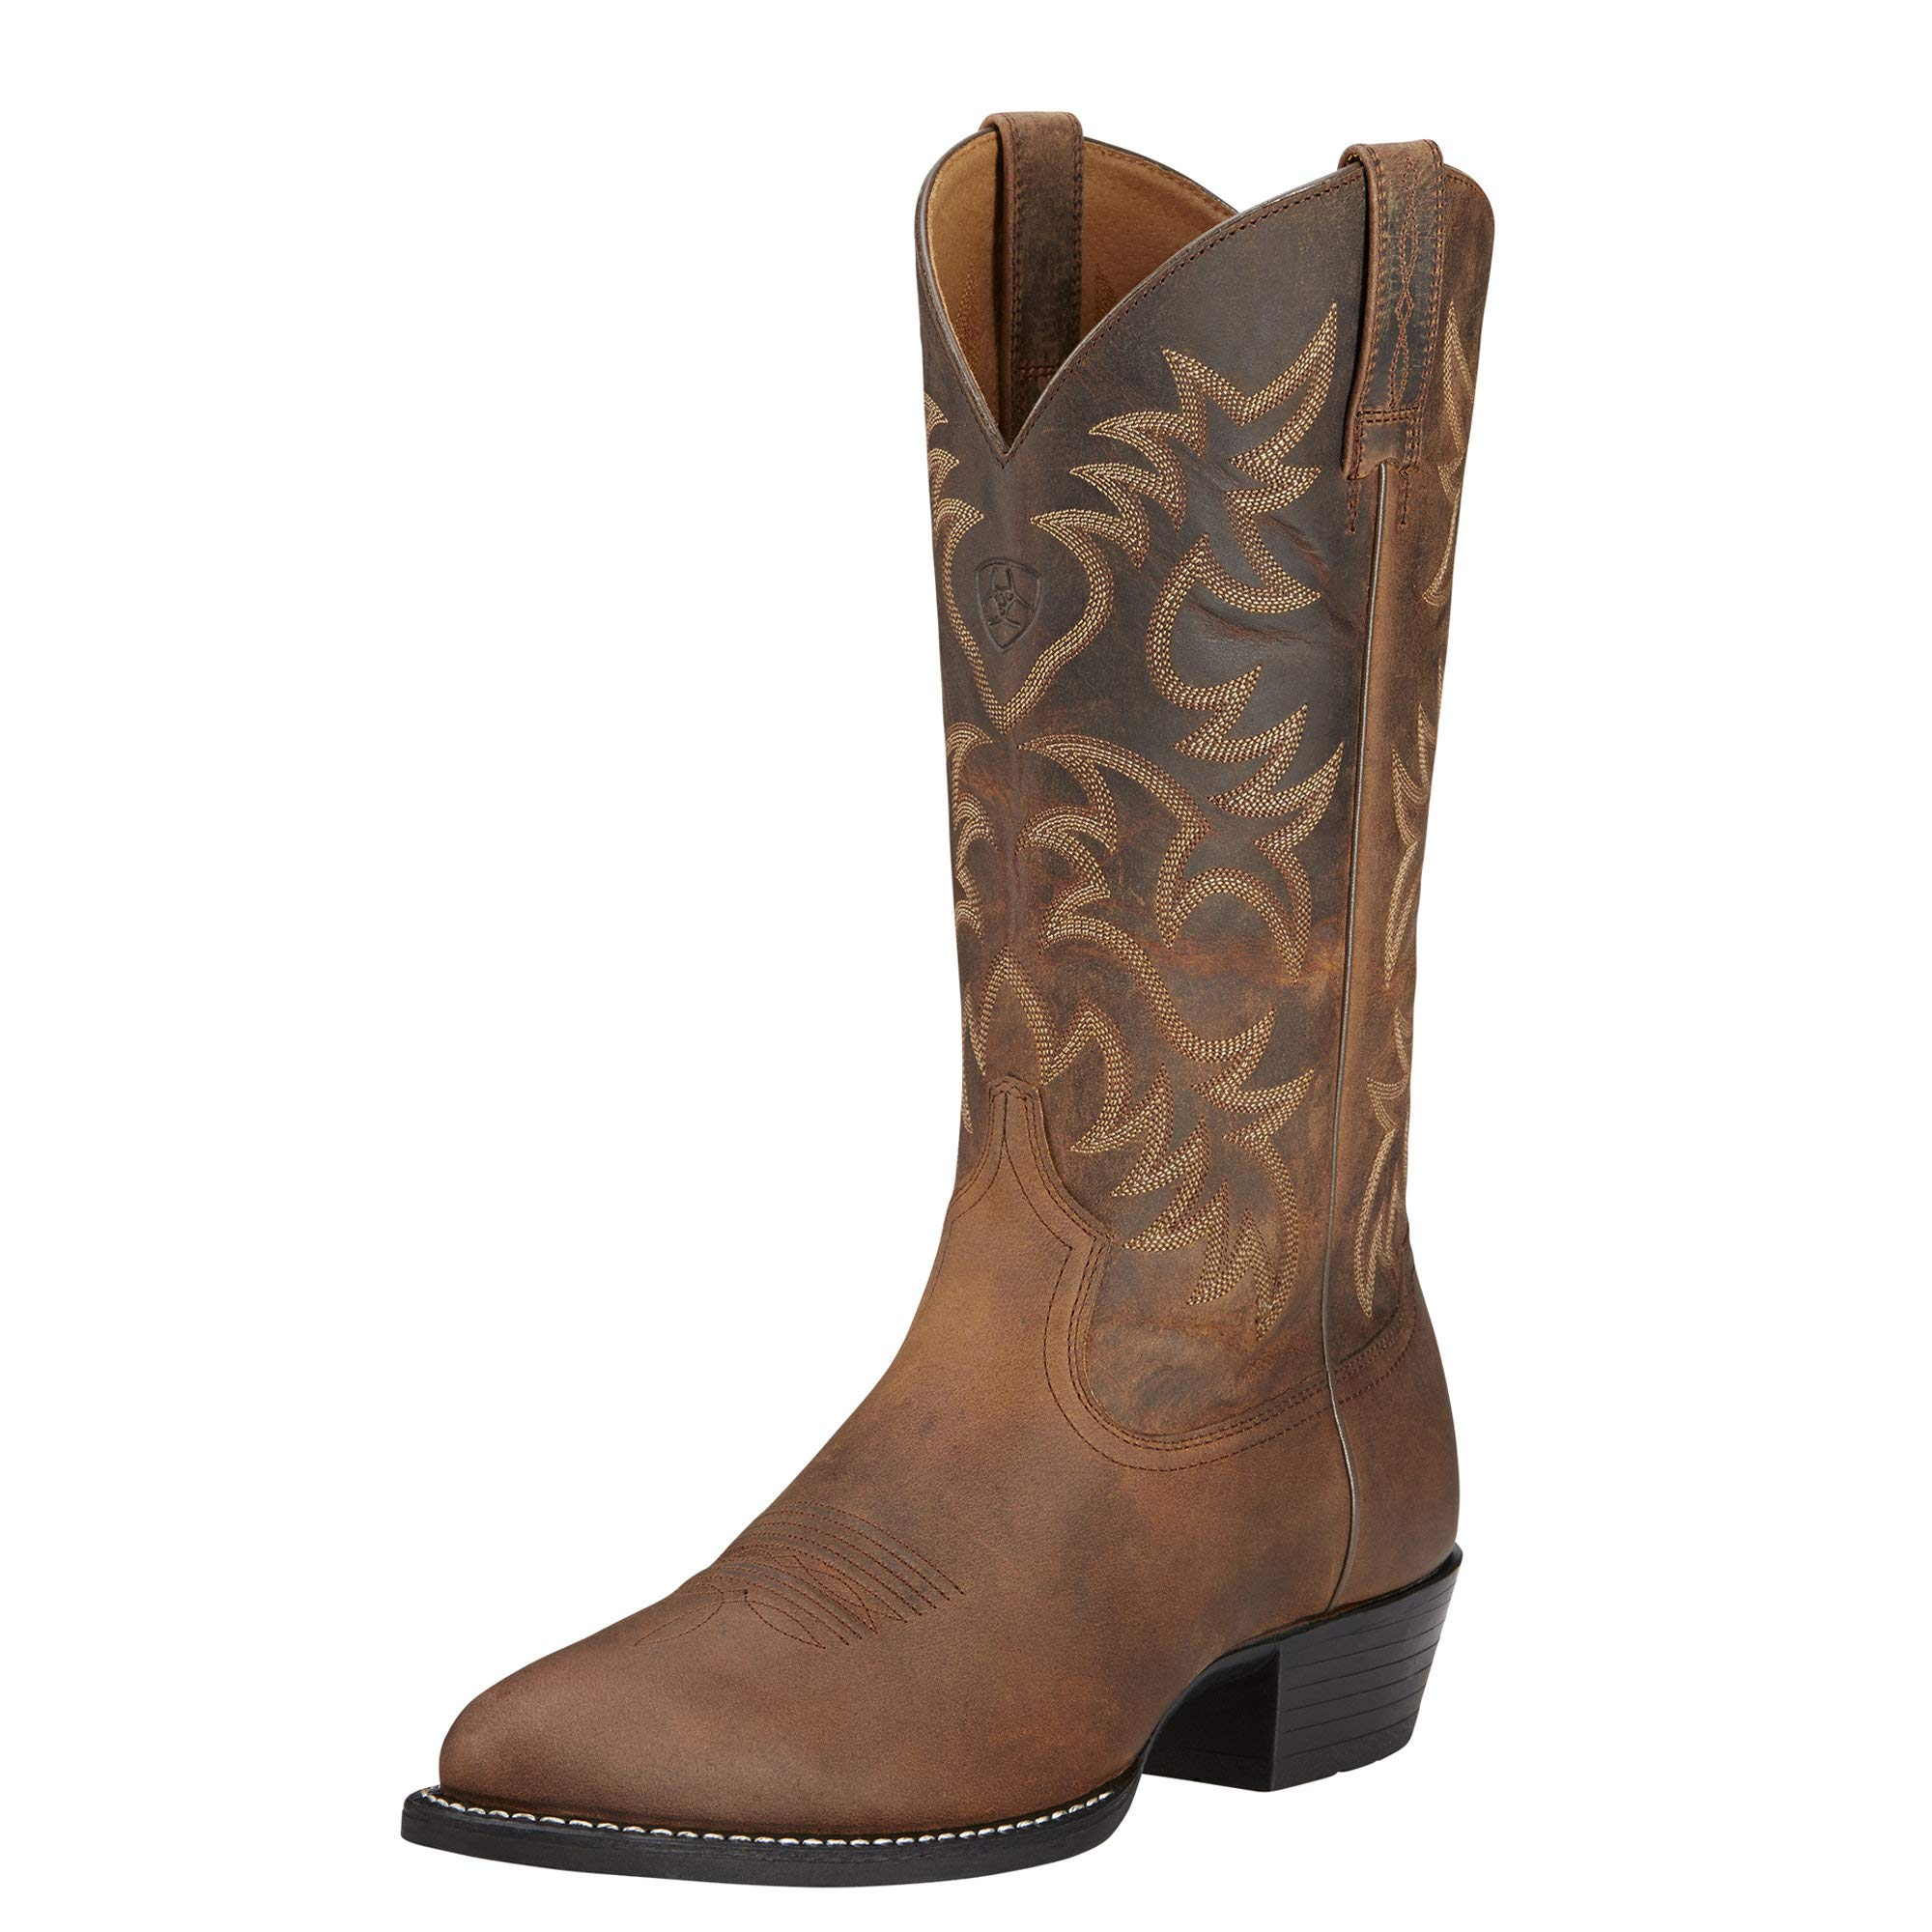 Ariat Men's Heritage Western R Toe Cowboy Boot, Distressed Brown, 10.5 D US by ARIAT